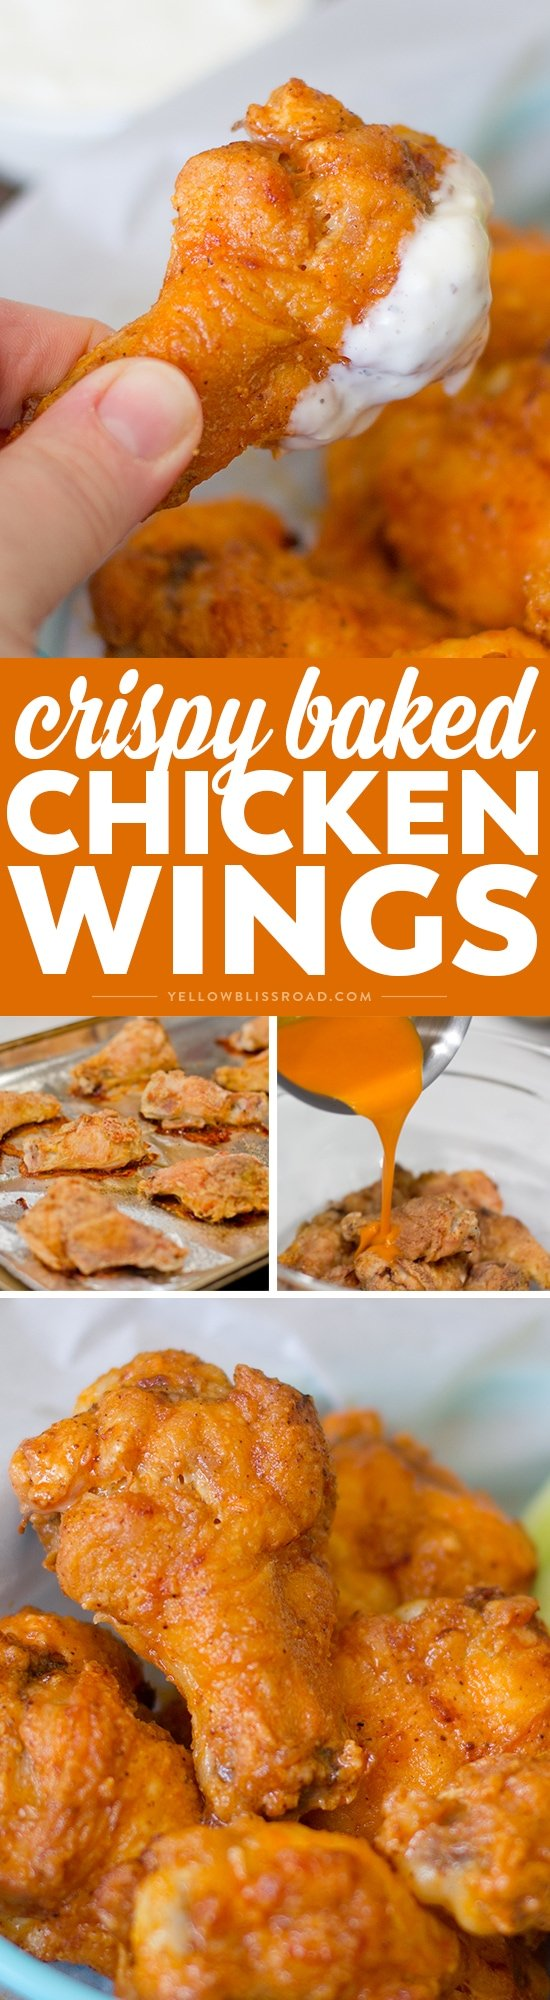 Chicken wings dipped in flour and spices, then baked until crispy. Coated with buffalo sauce these Crispy Baked Chicken Wings will become a family favorite!